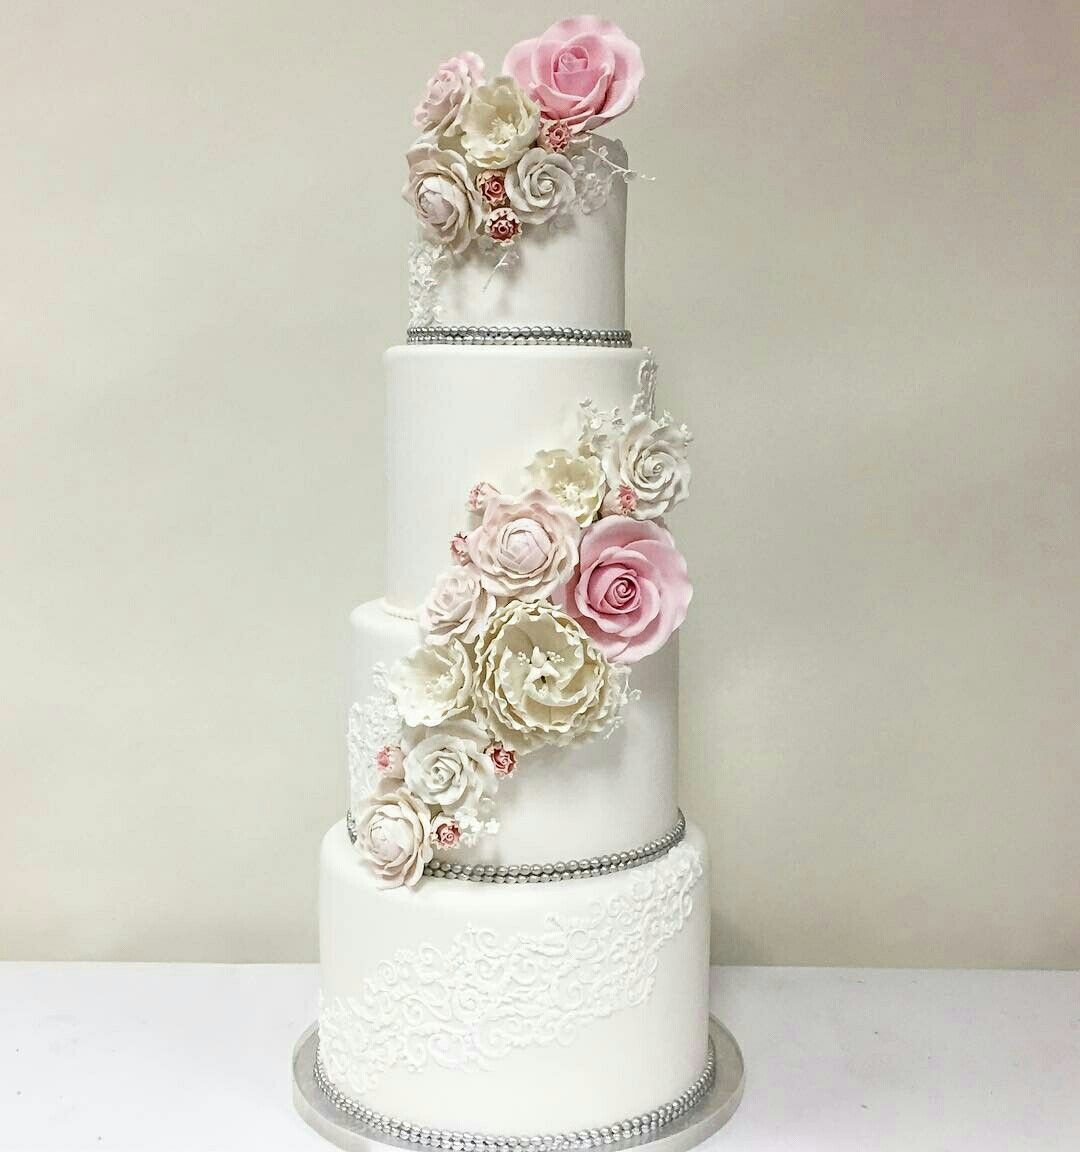 Finecakesbyzehraofficial cakes for the love of cake pinterest